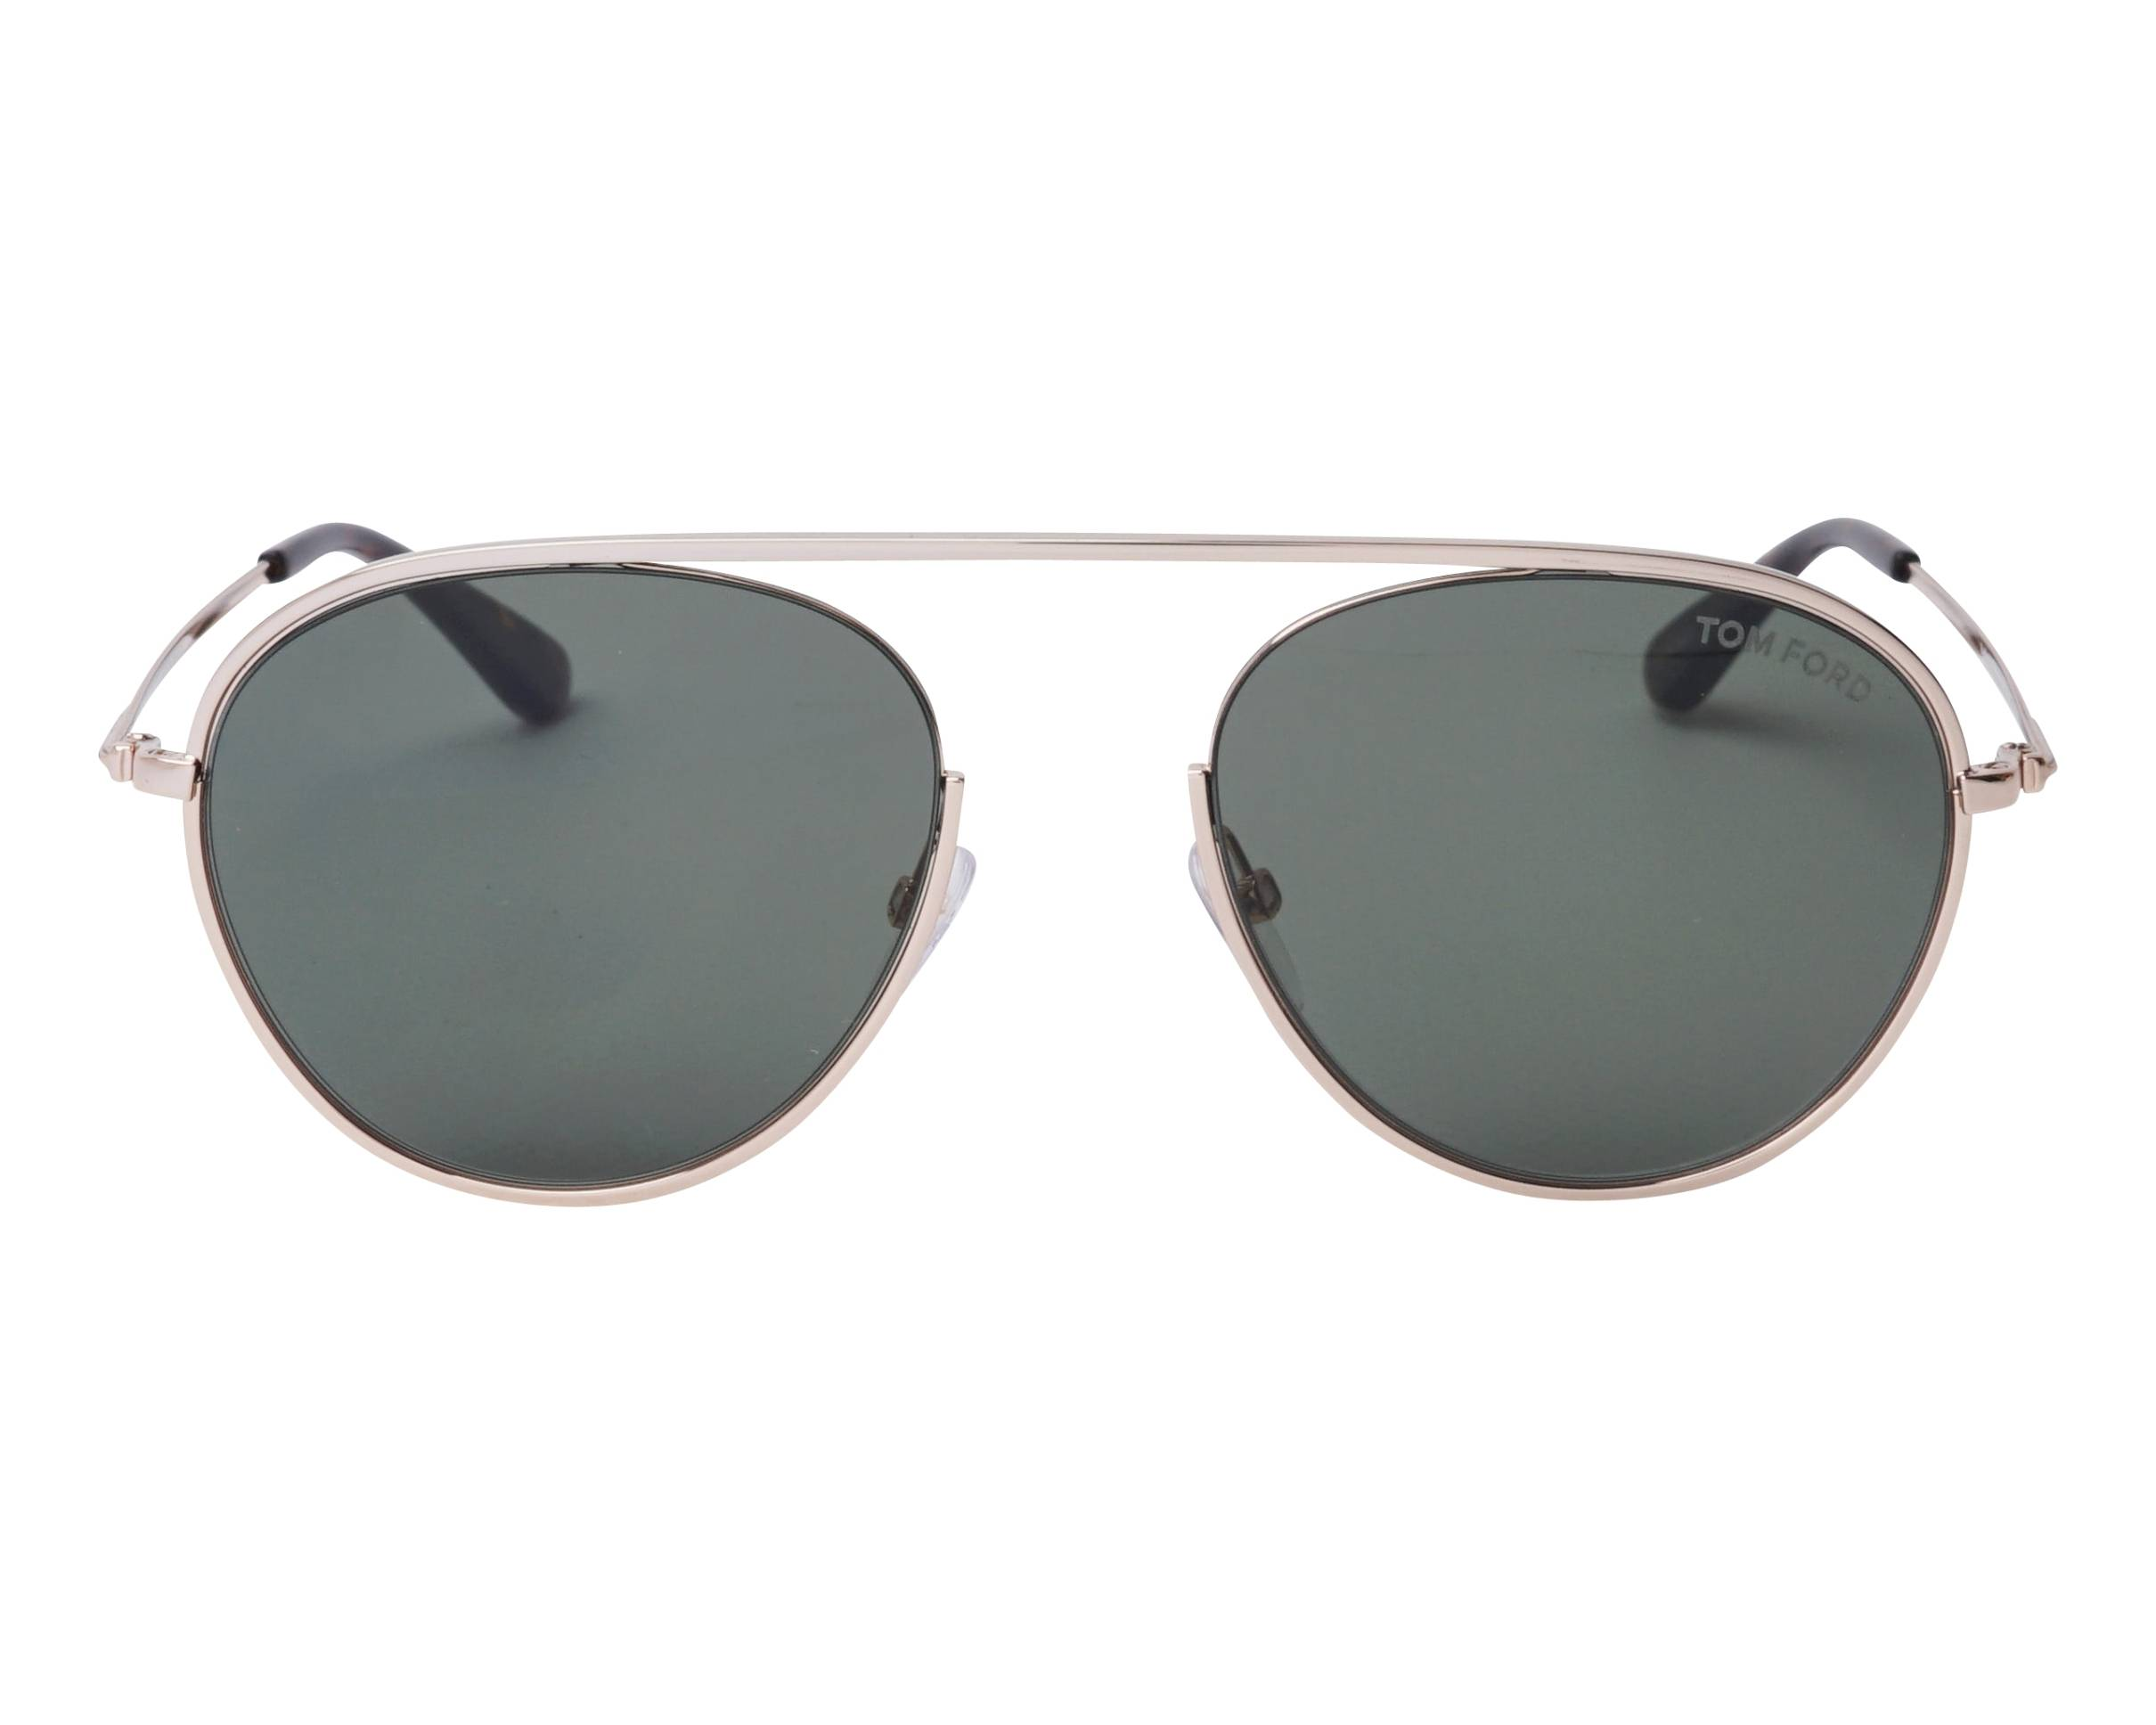 b56524b0af Sunglasses Tom Ford TF-0599 28N 55-19 Gold front view